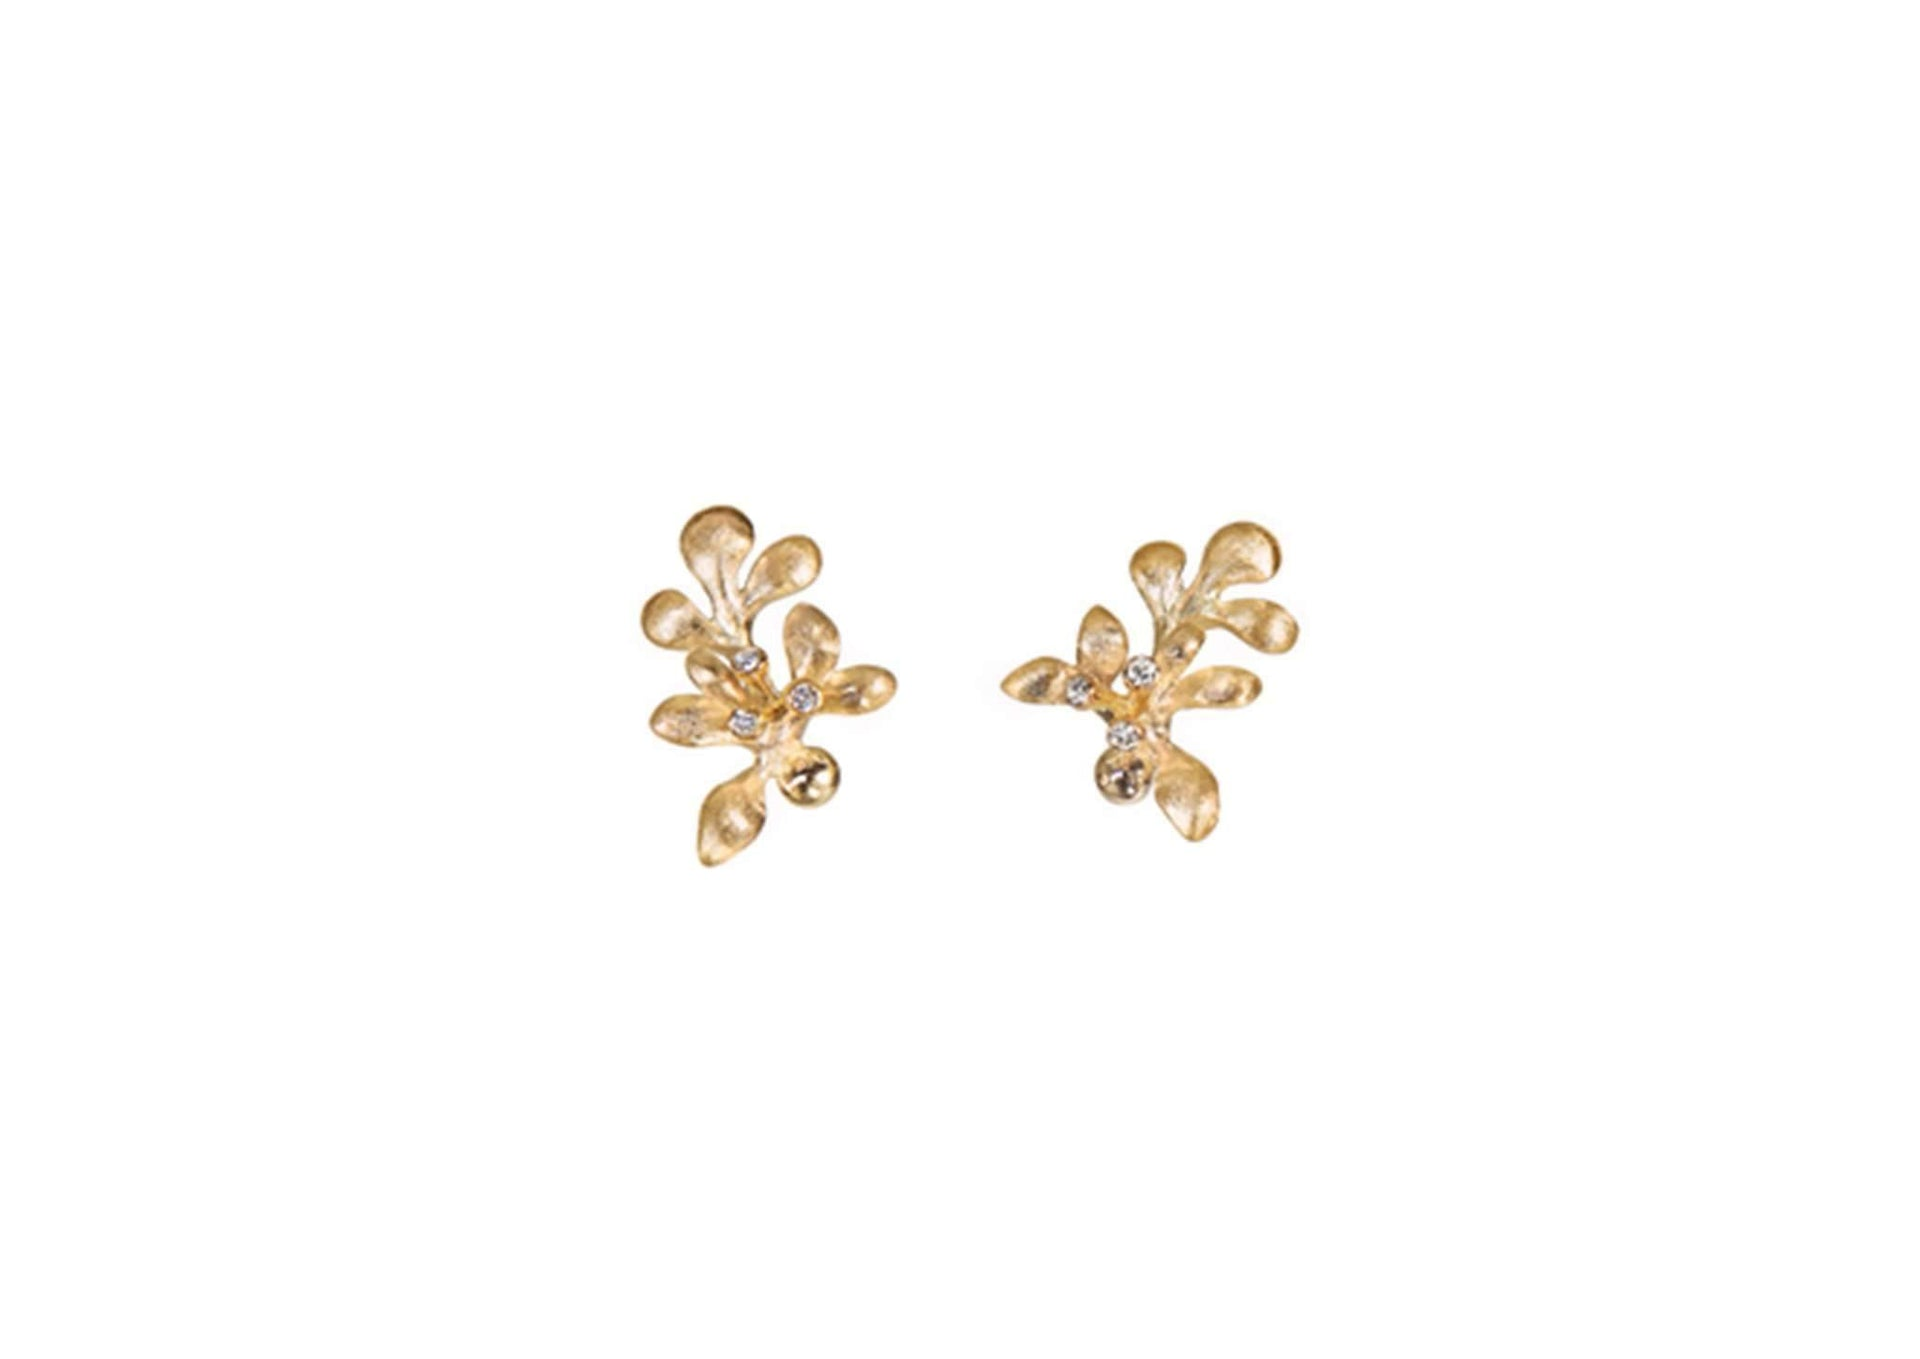 Gipsy earrings in 18K yellow gold and diamonds